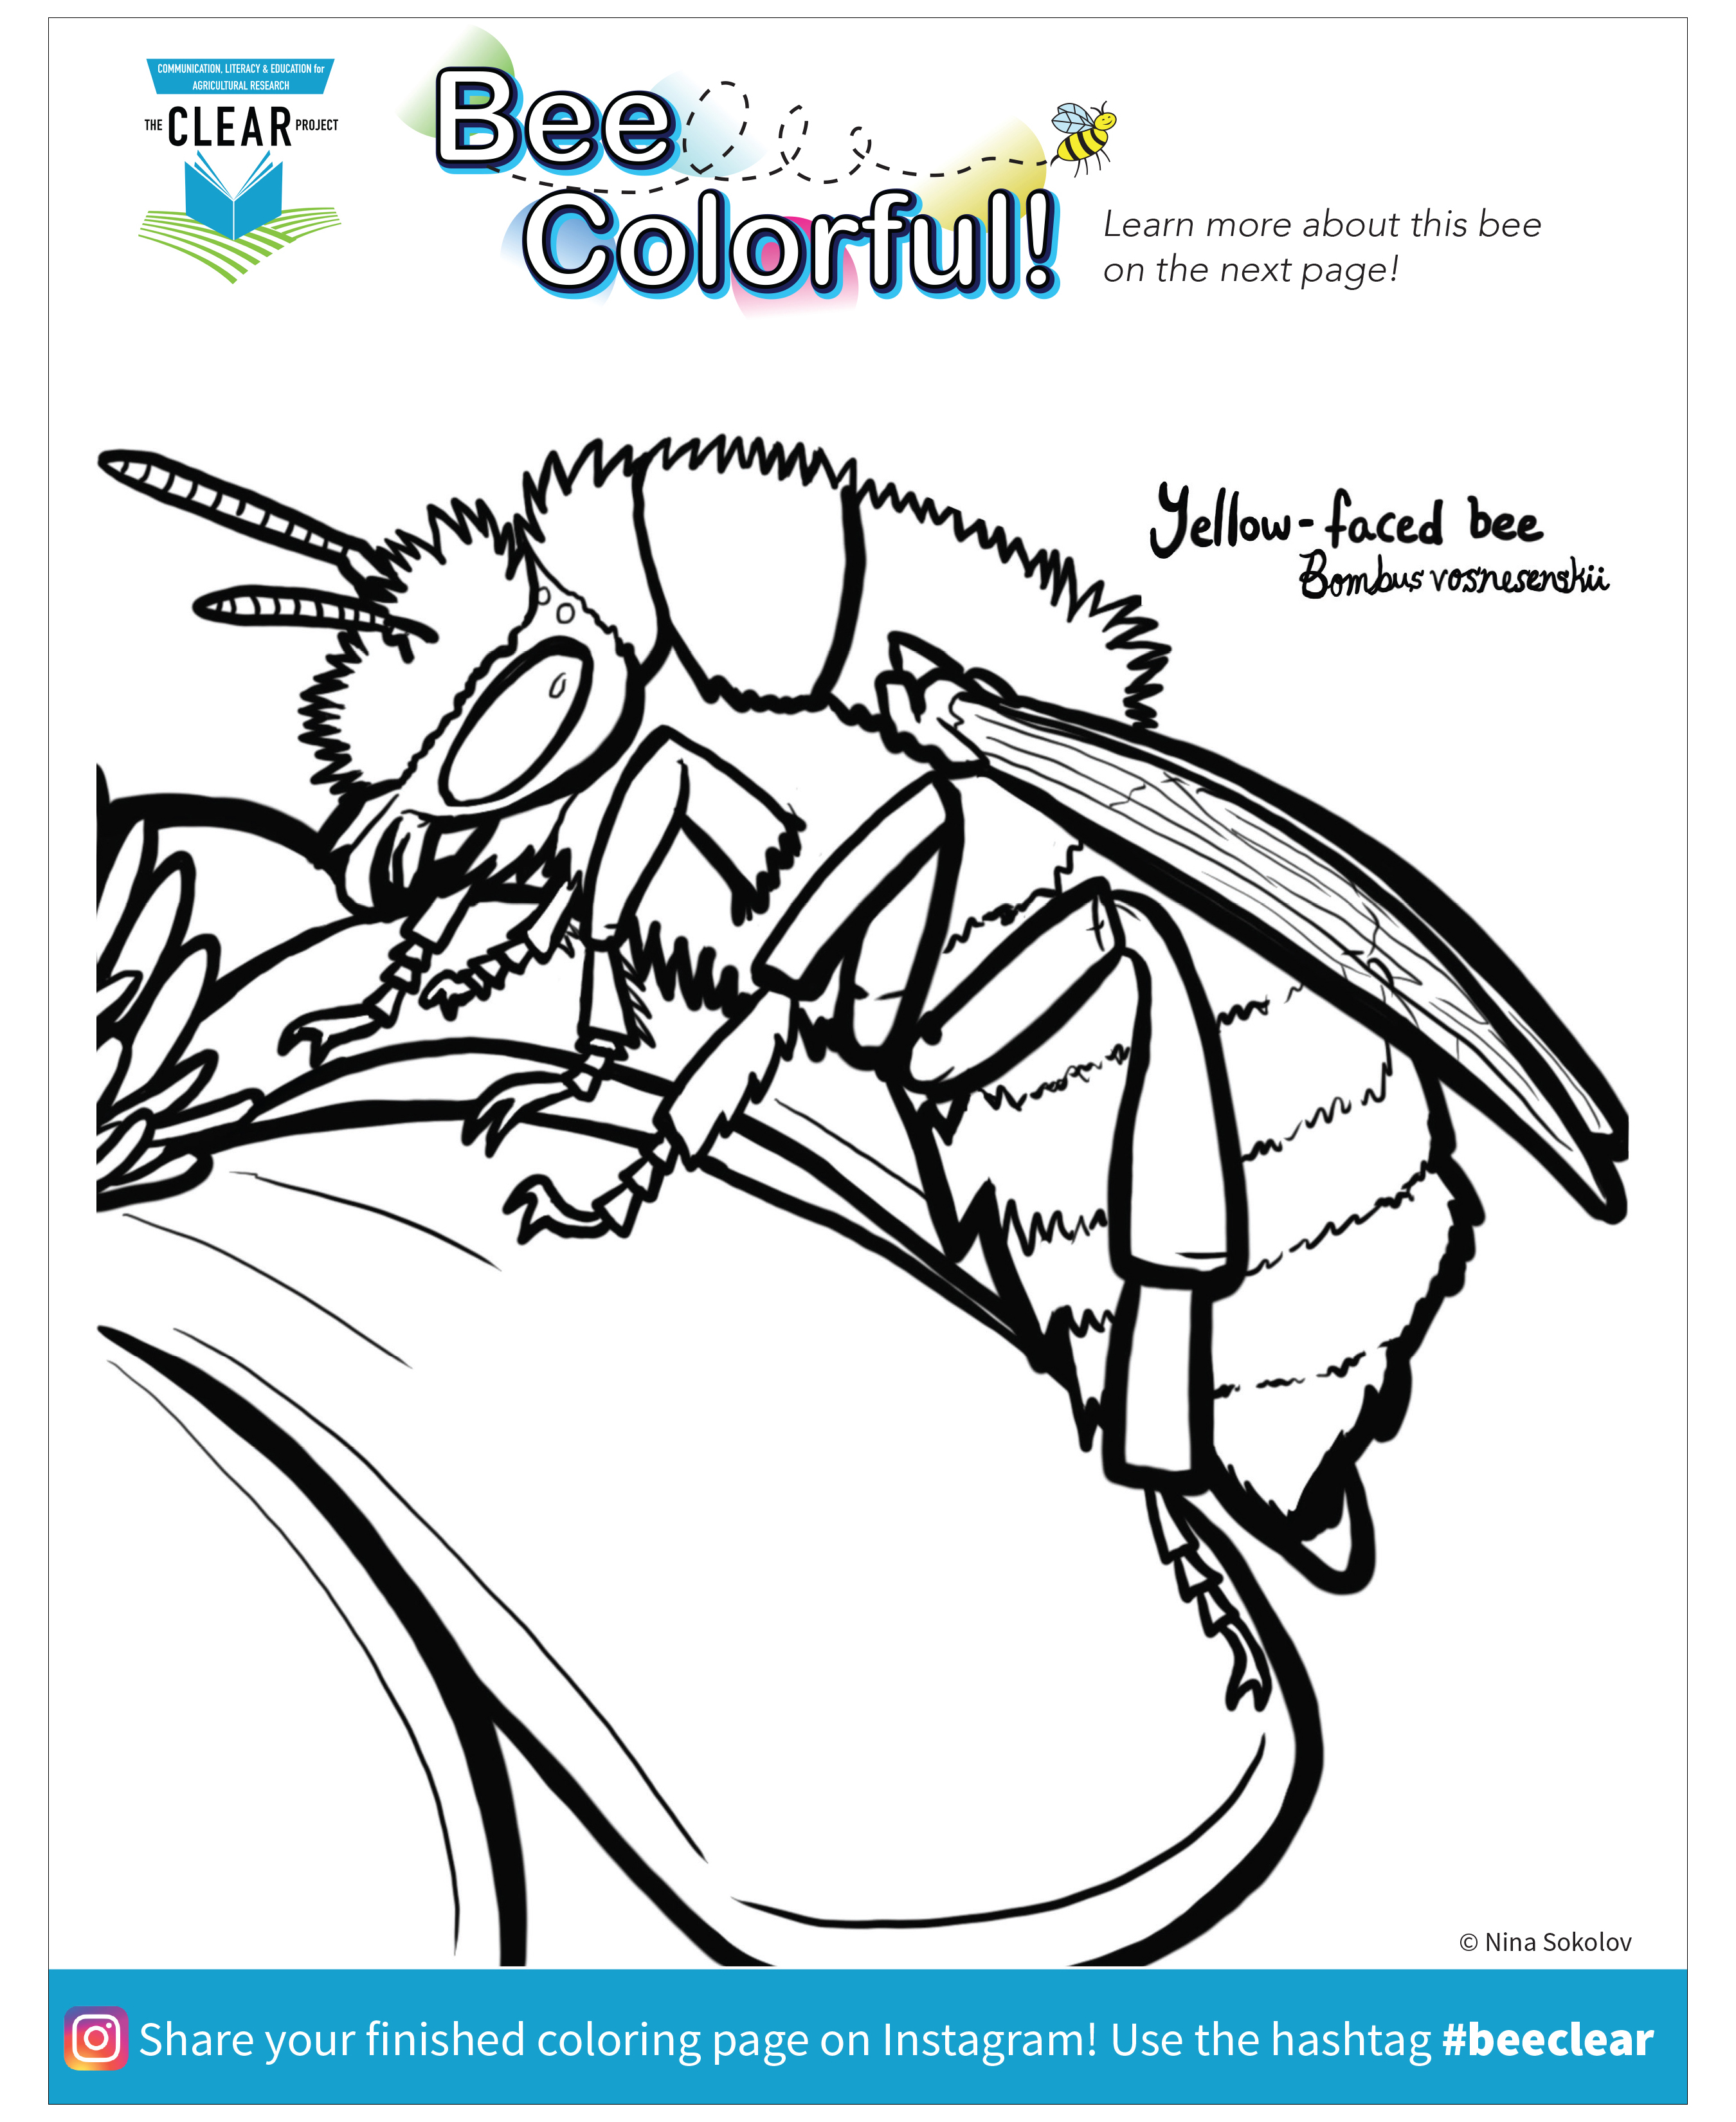 Yellow-faced bee coloring page